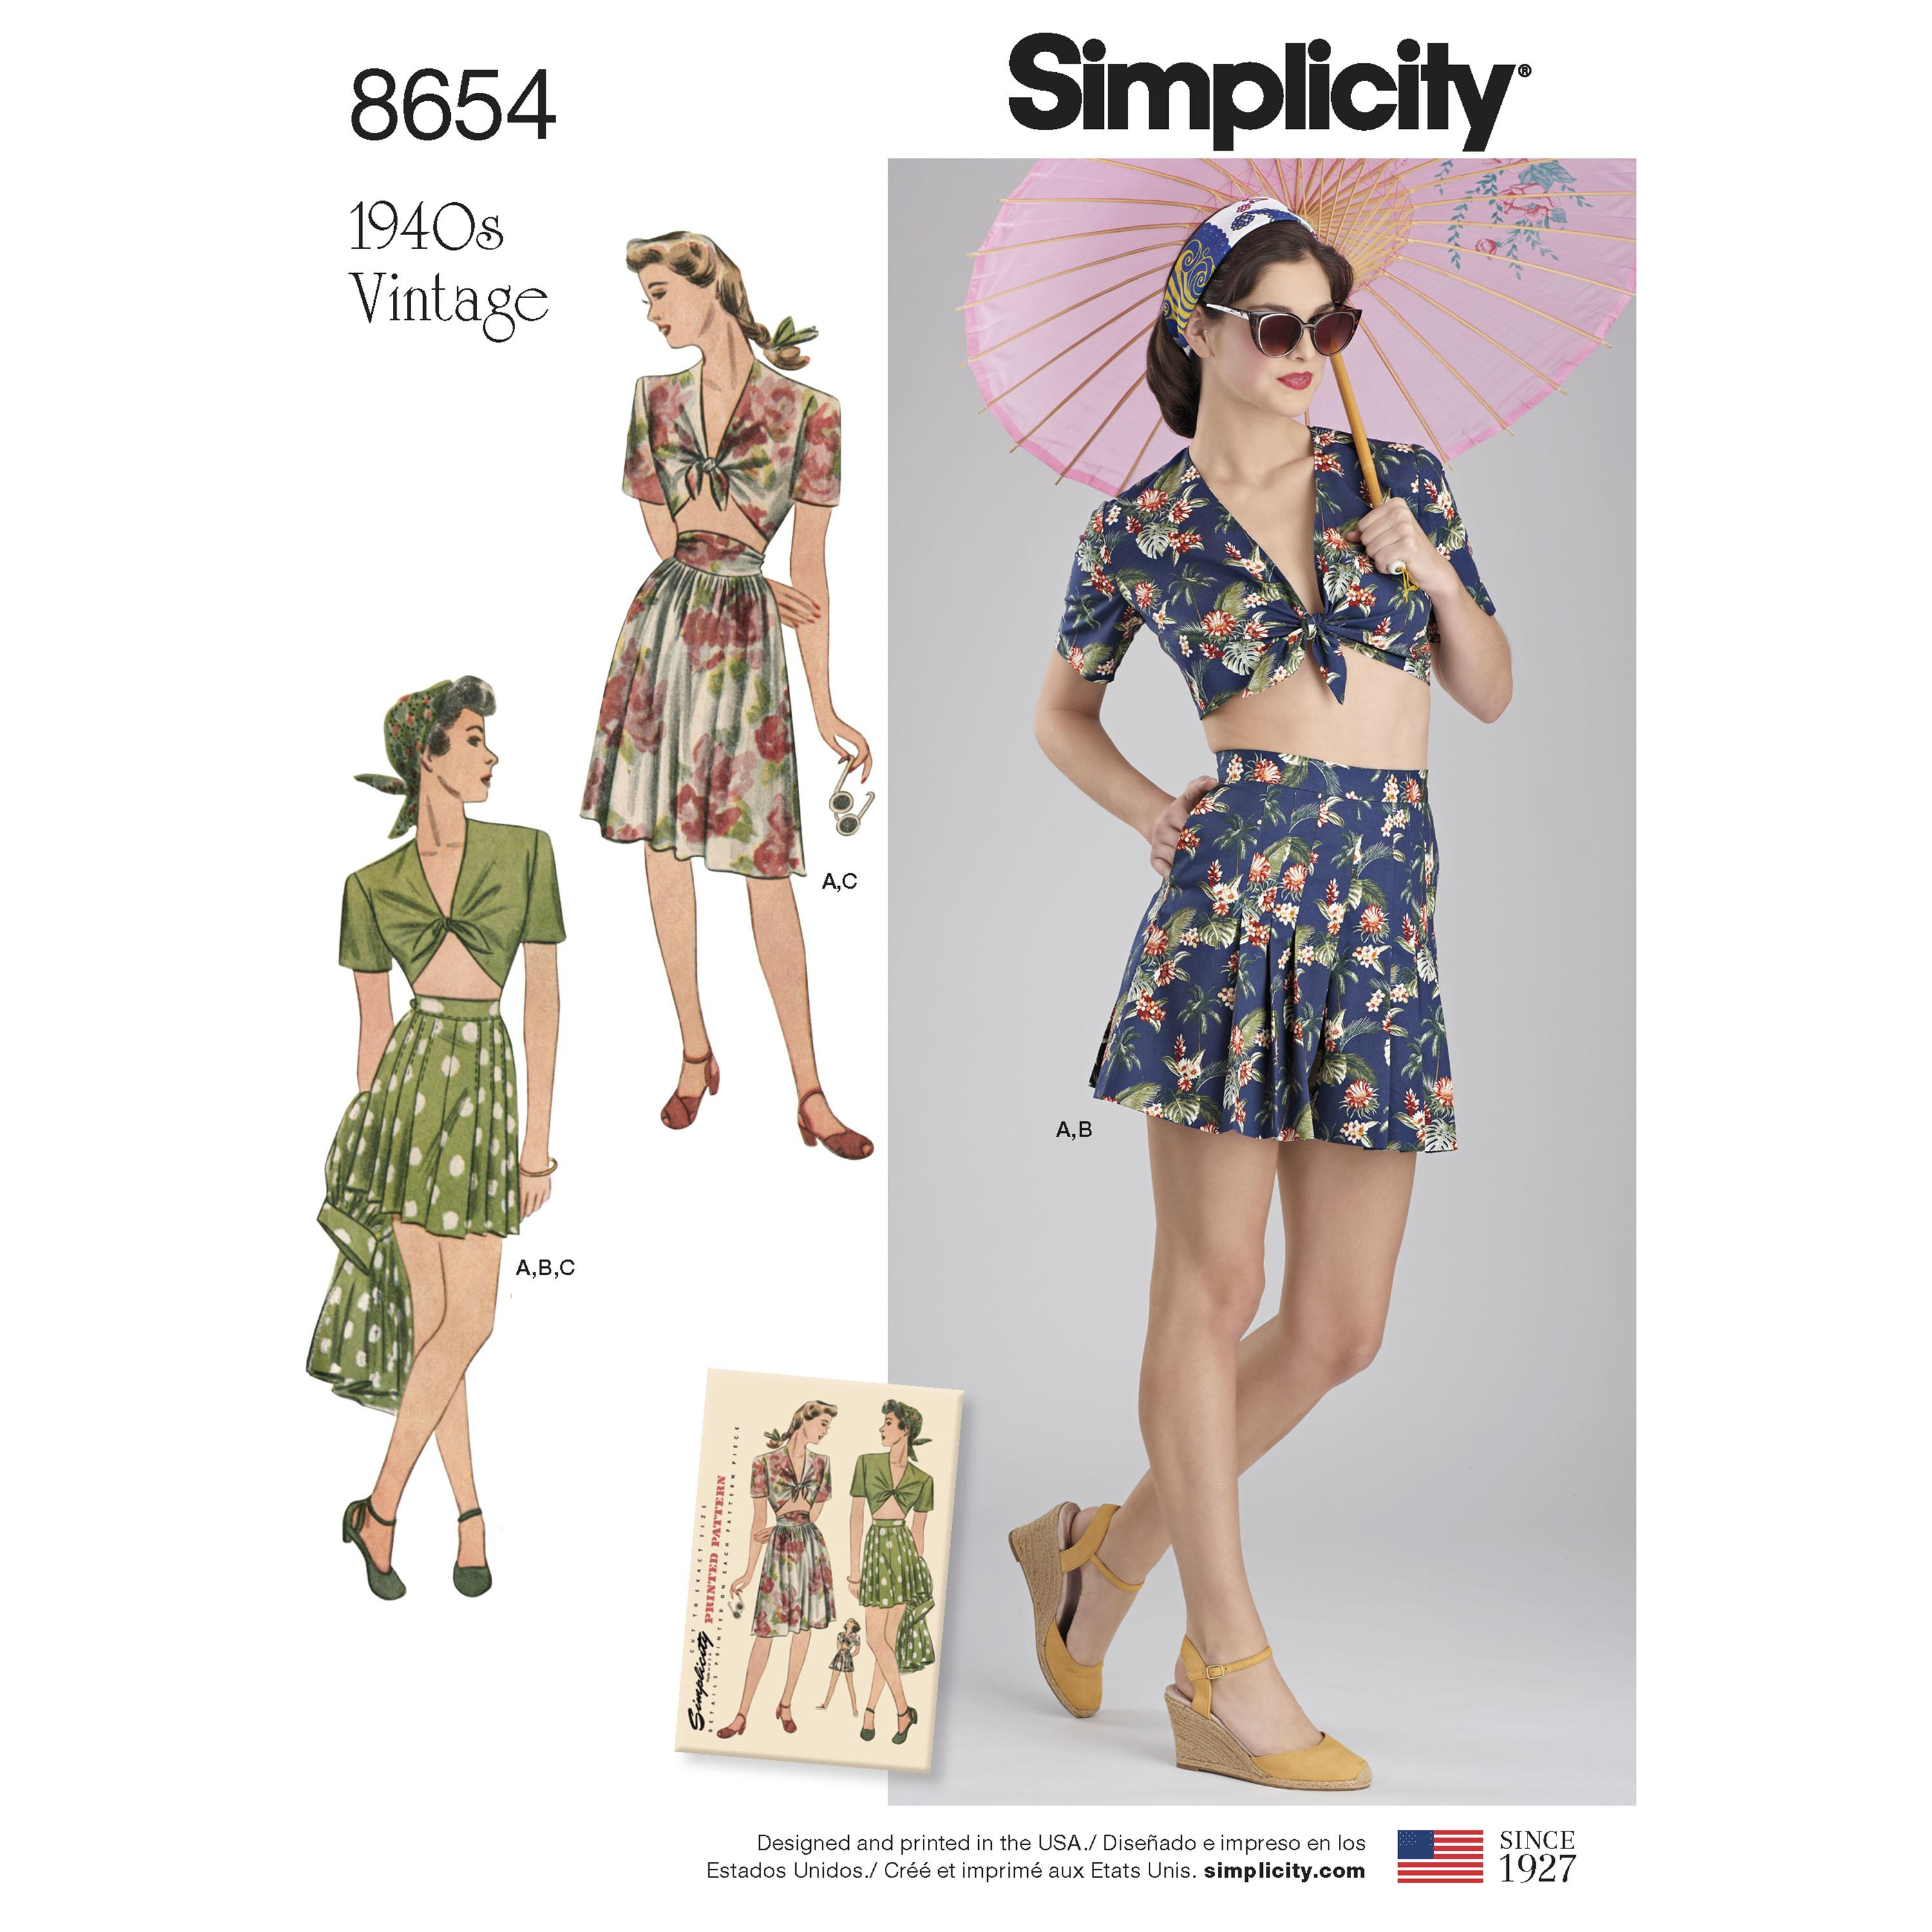 Simplicity S8654 Womens Vintage Skirt, Shorts and Tie Top